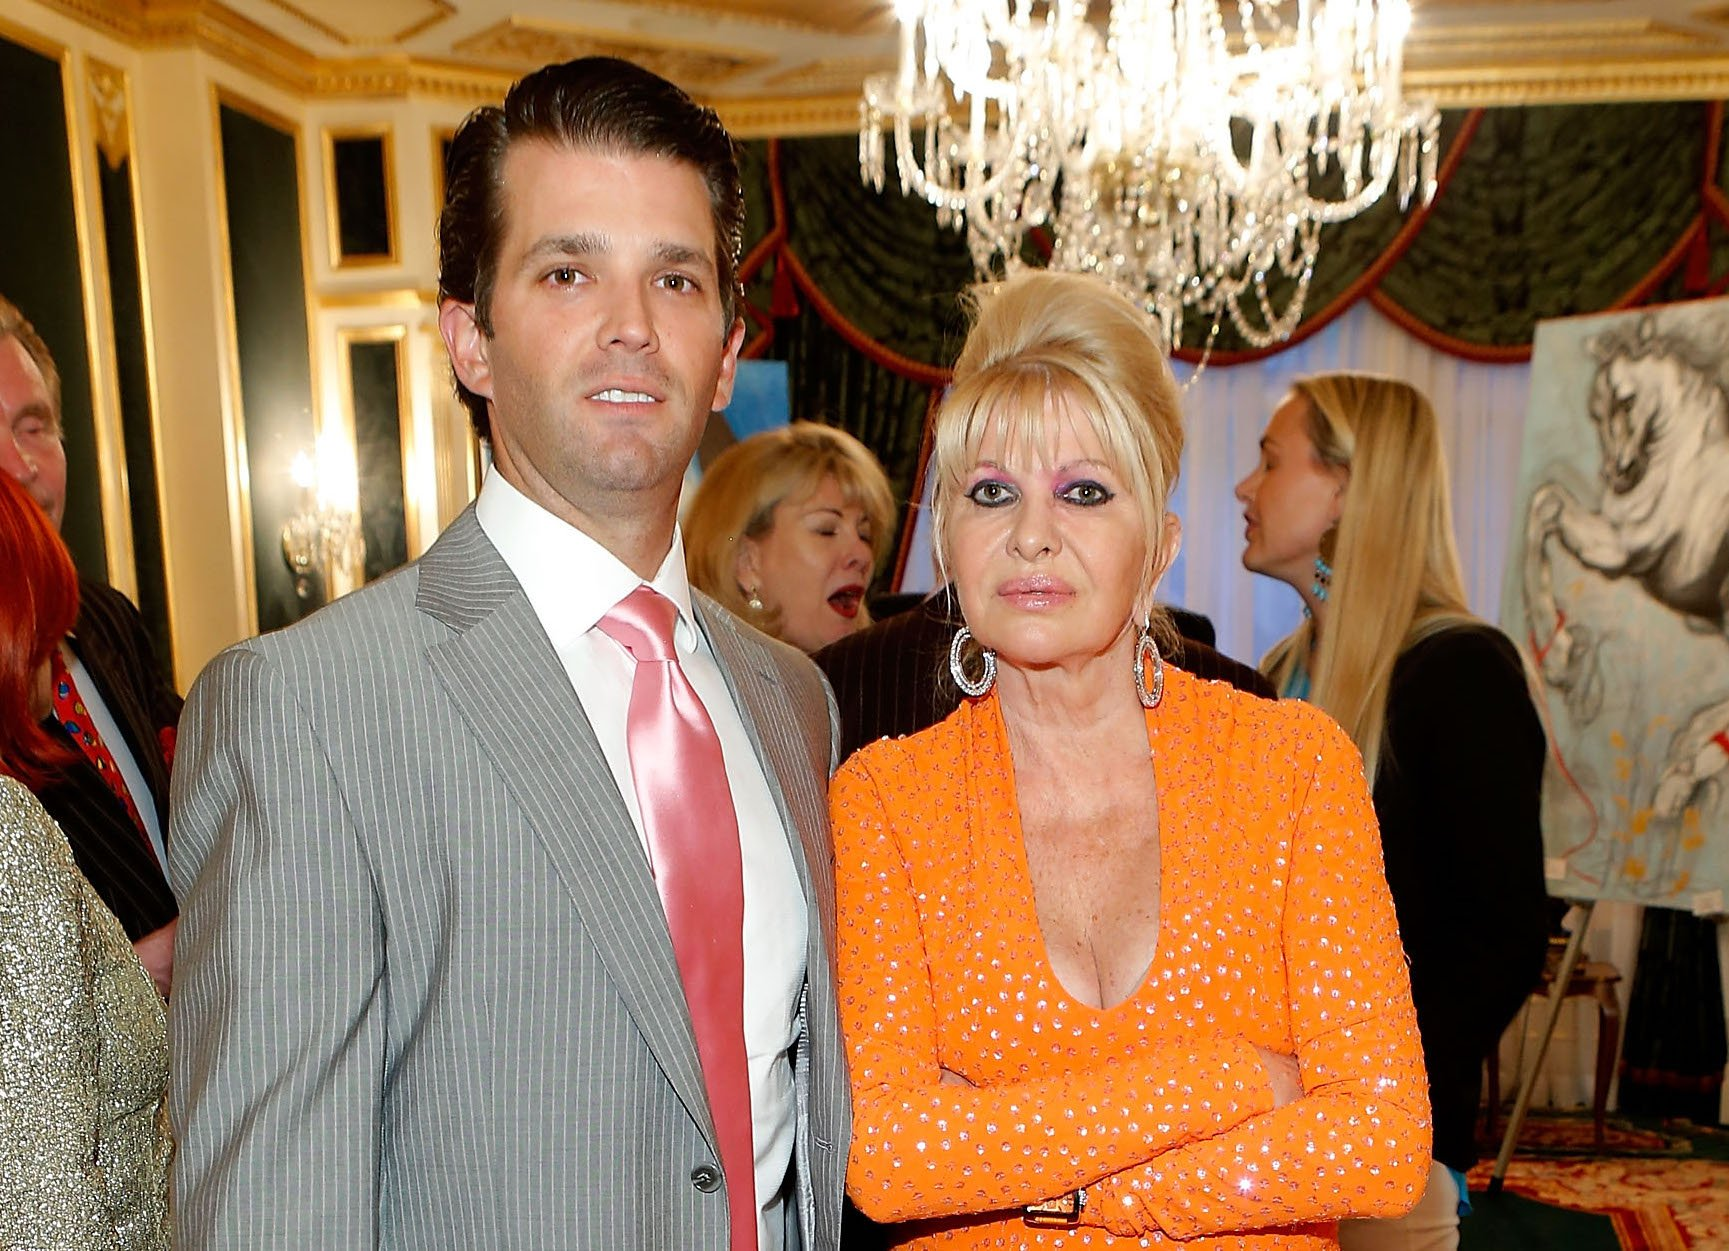 Aubrey O'Day Taylor Swiftboated Don Trump Jr